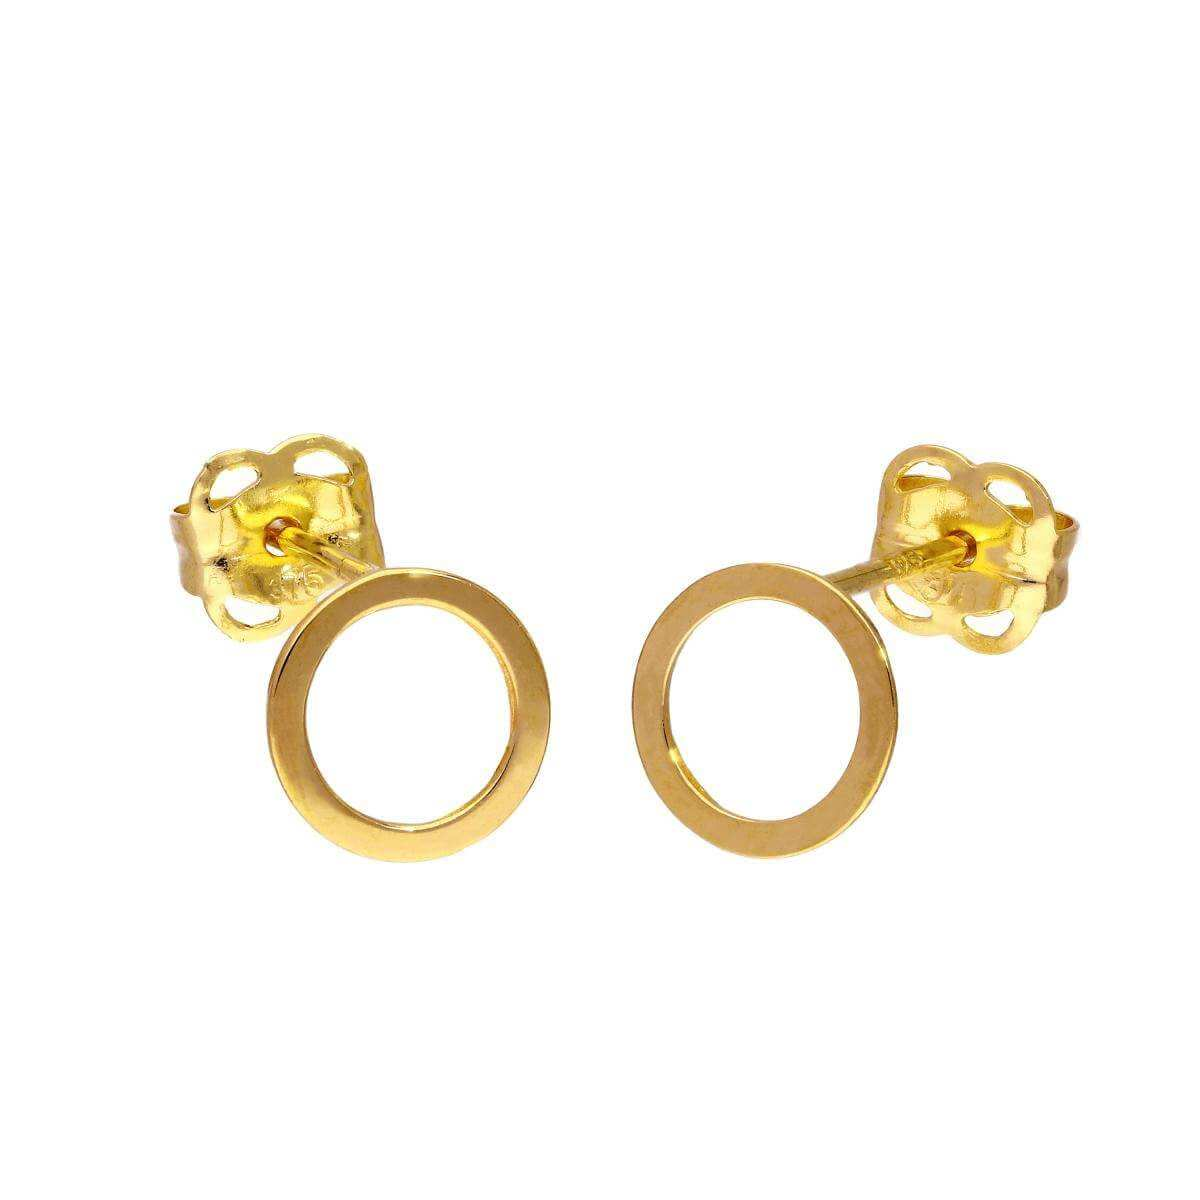 9ct Gold 6mm Circle Stud Earrings